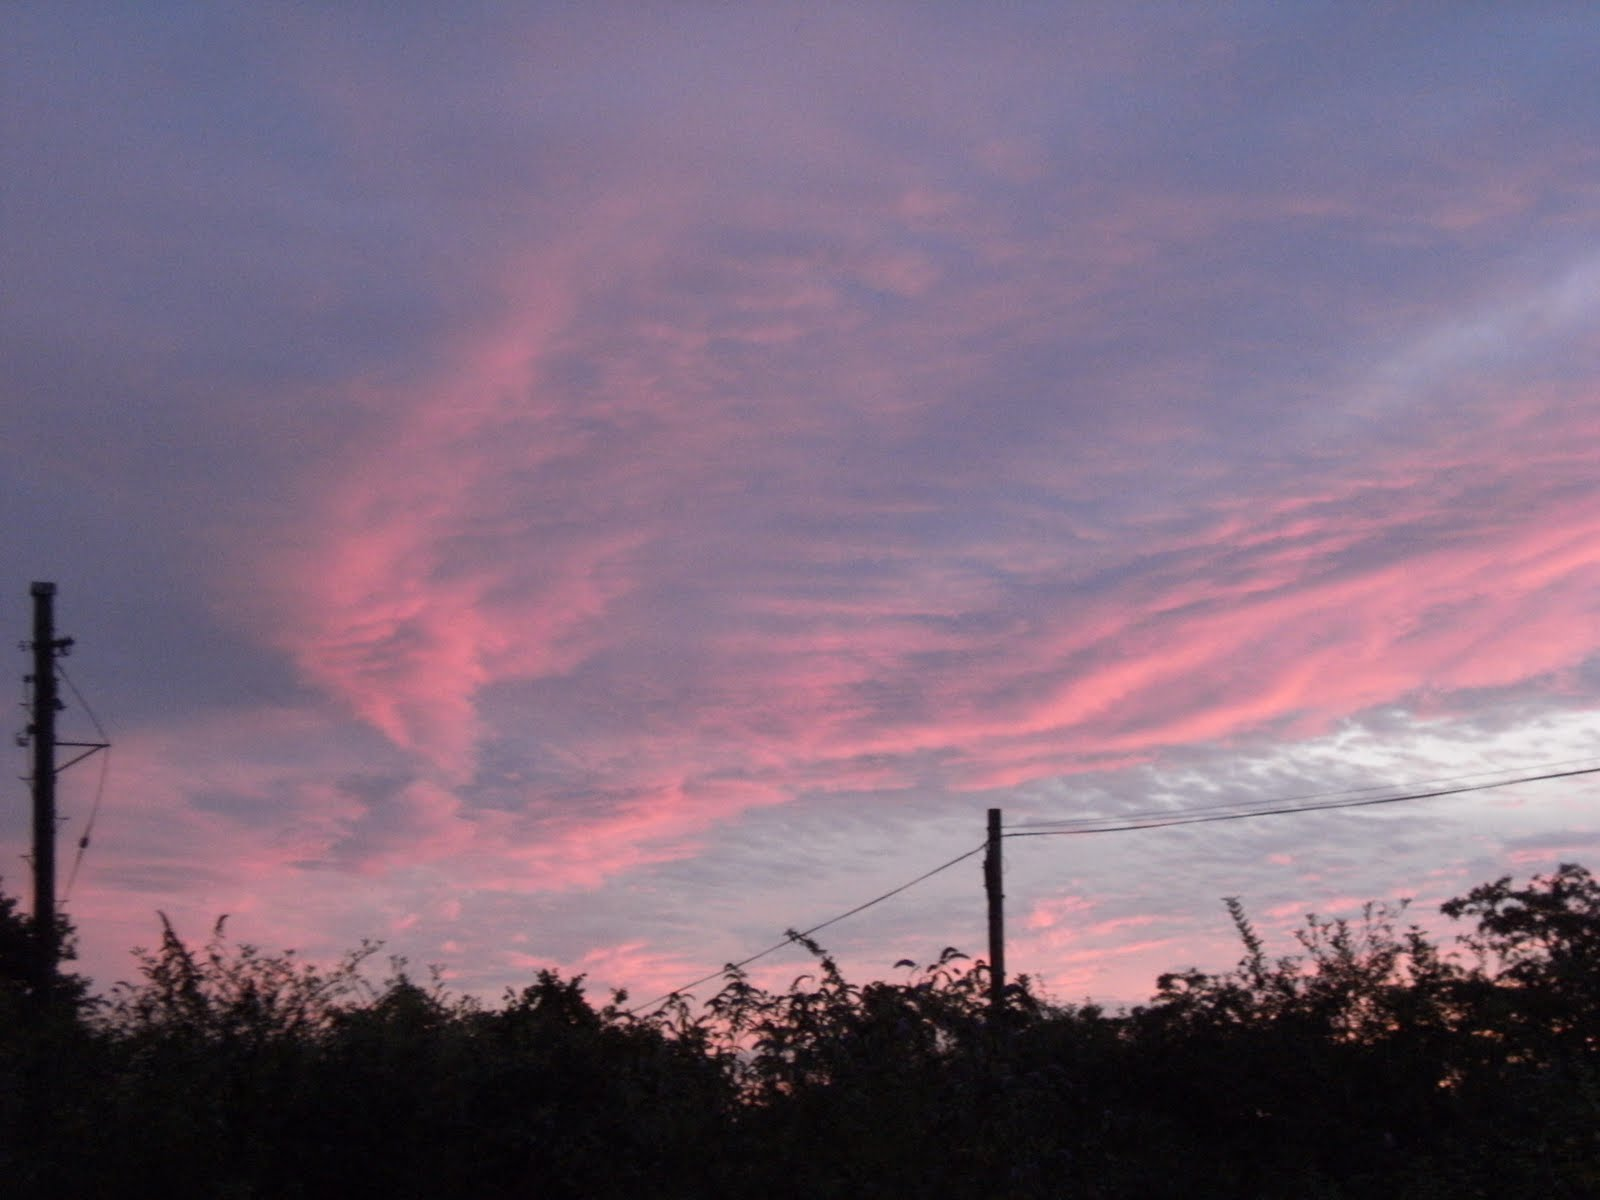 DSCF9297 Evening sky over Pulborough